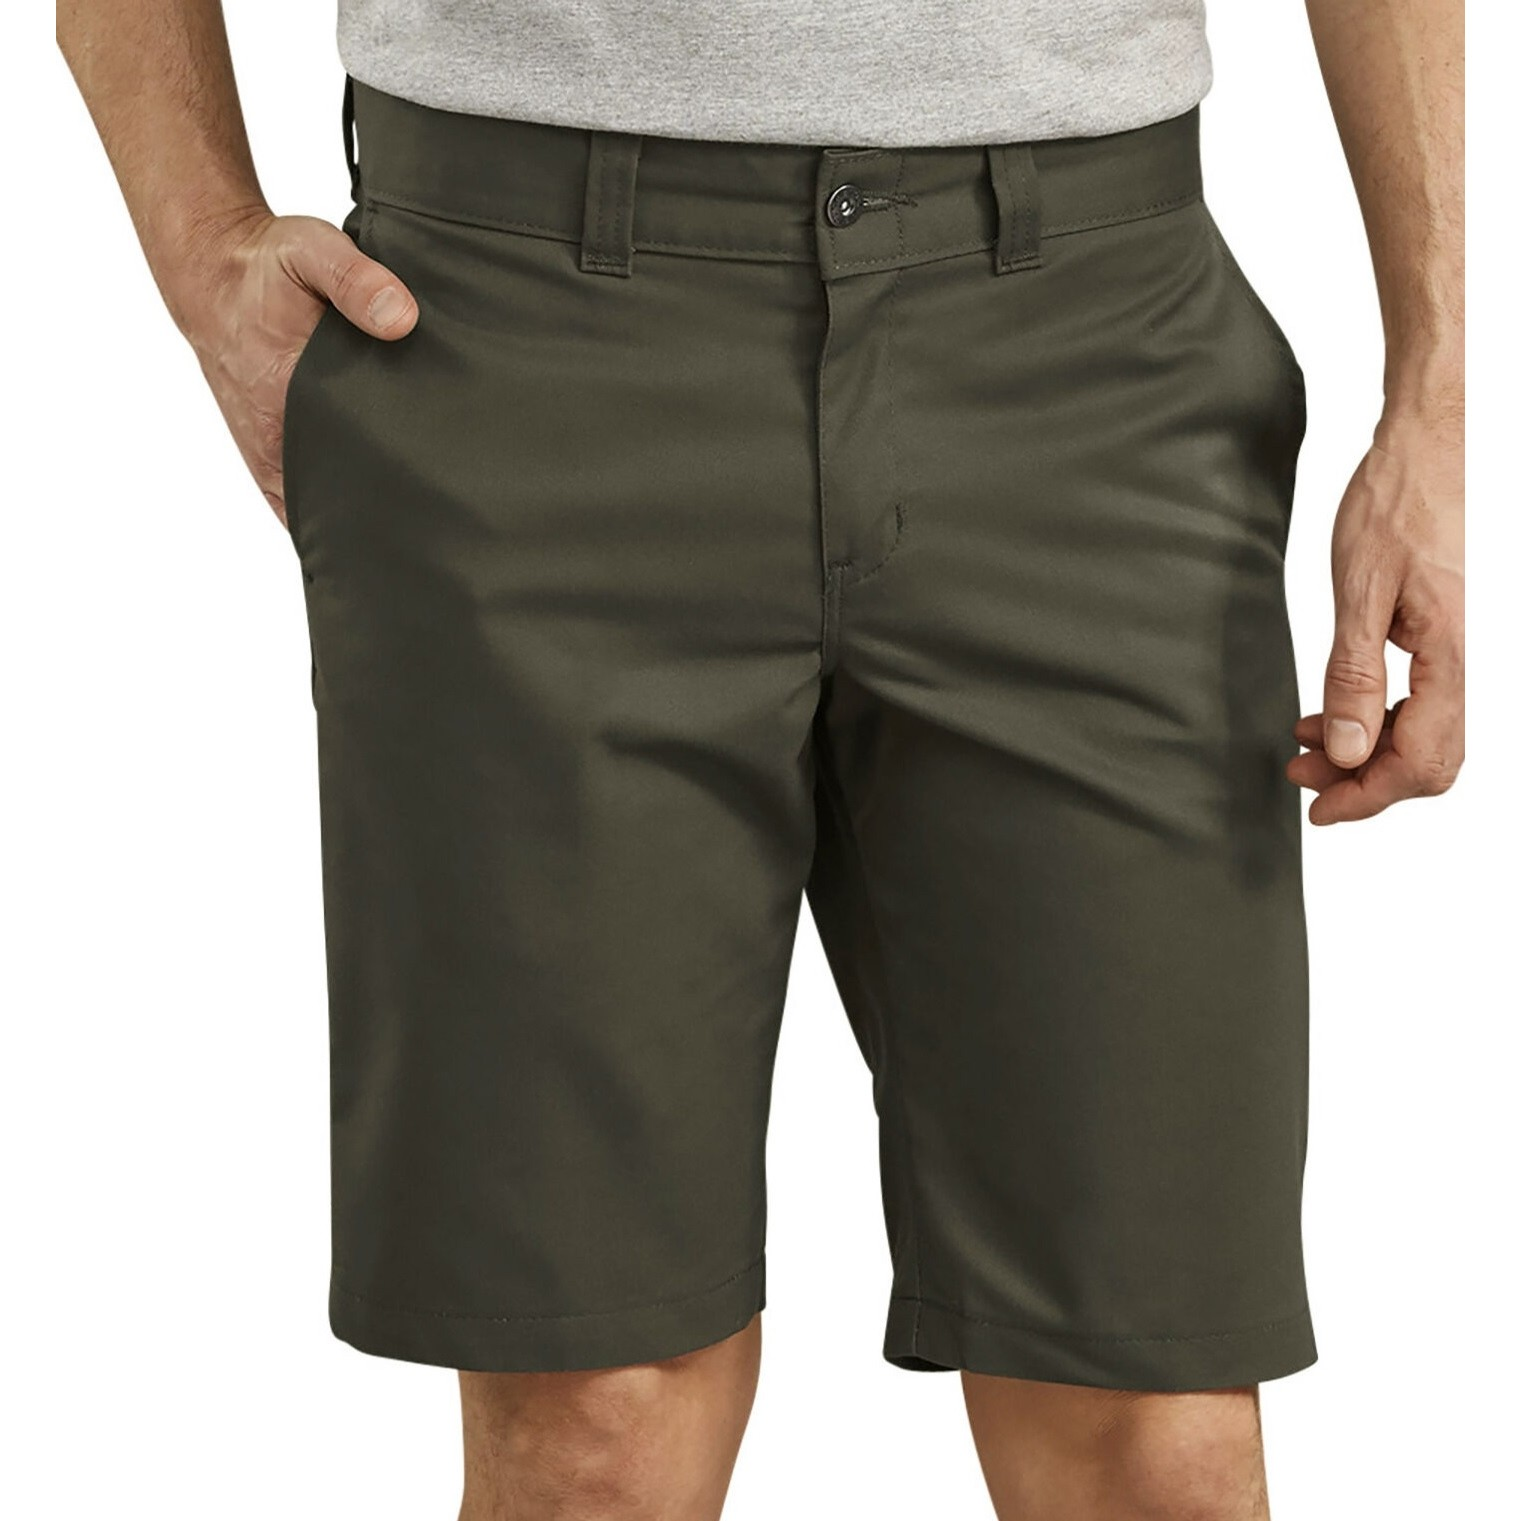 67 Slim Industrial Work Short (Olive Green)